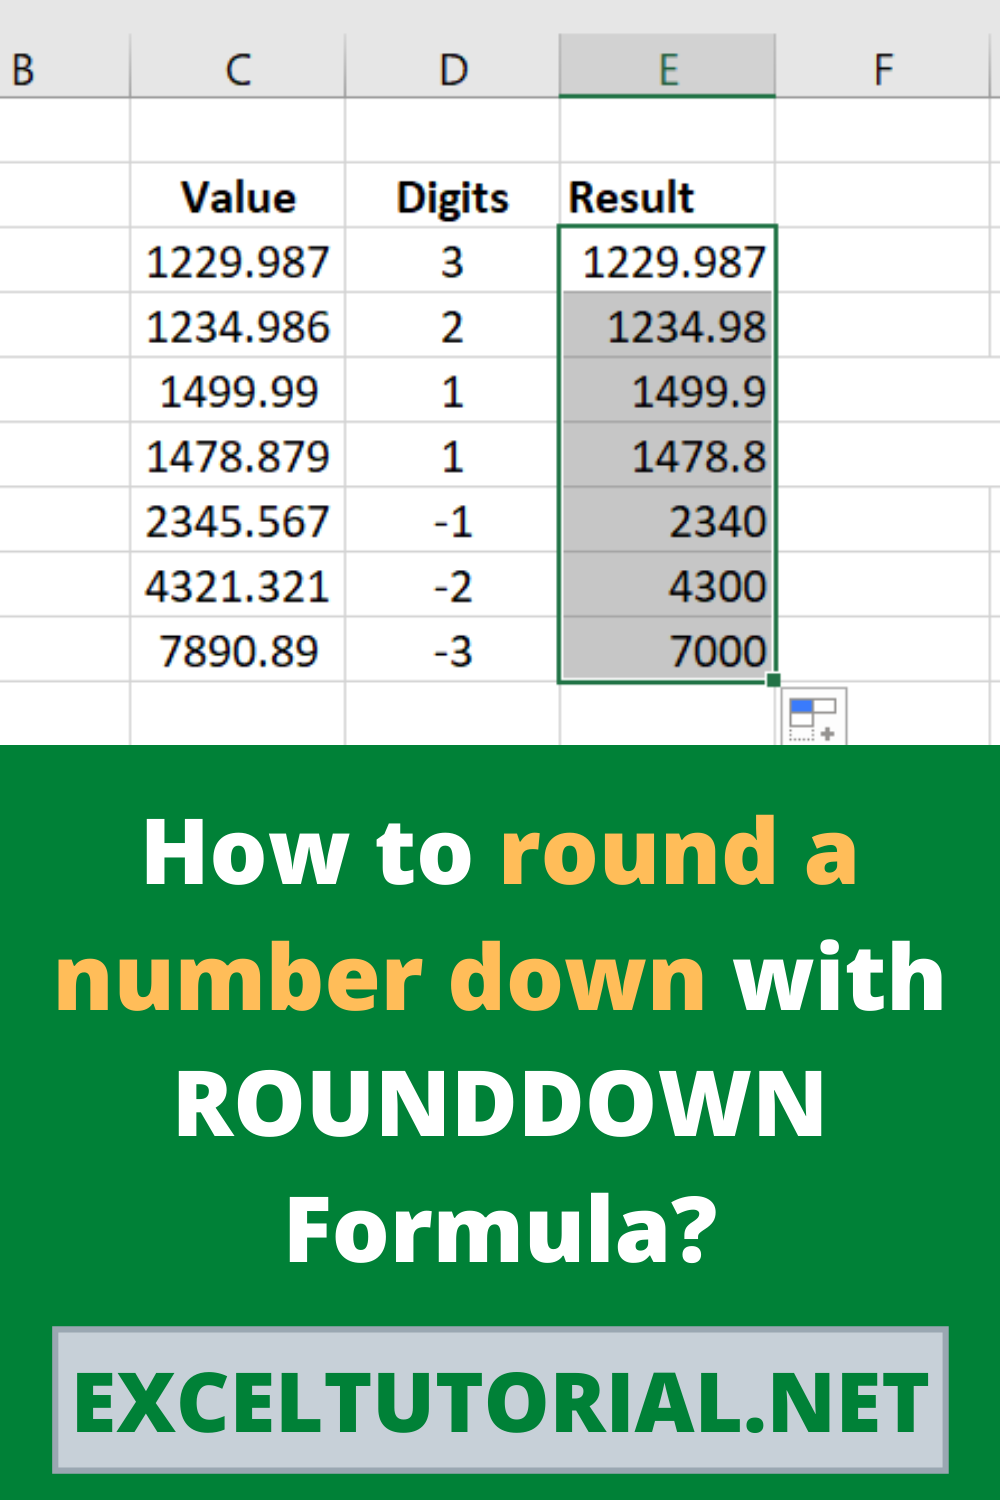 How To Round A Number Down With Rounddown Formula In 2021 Excel Tutorials Microsoft Excel Lessons Excel Formula